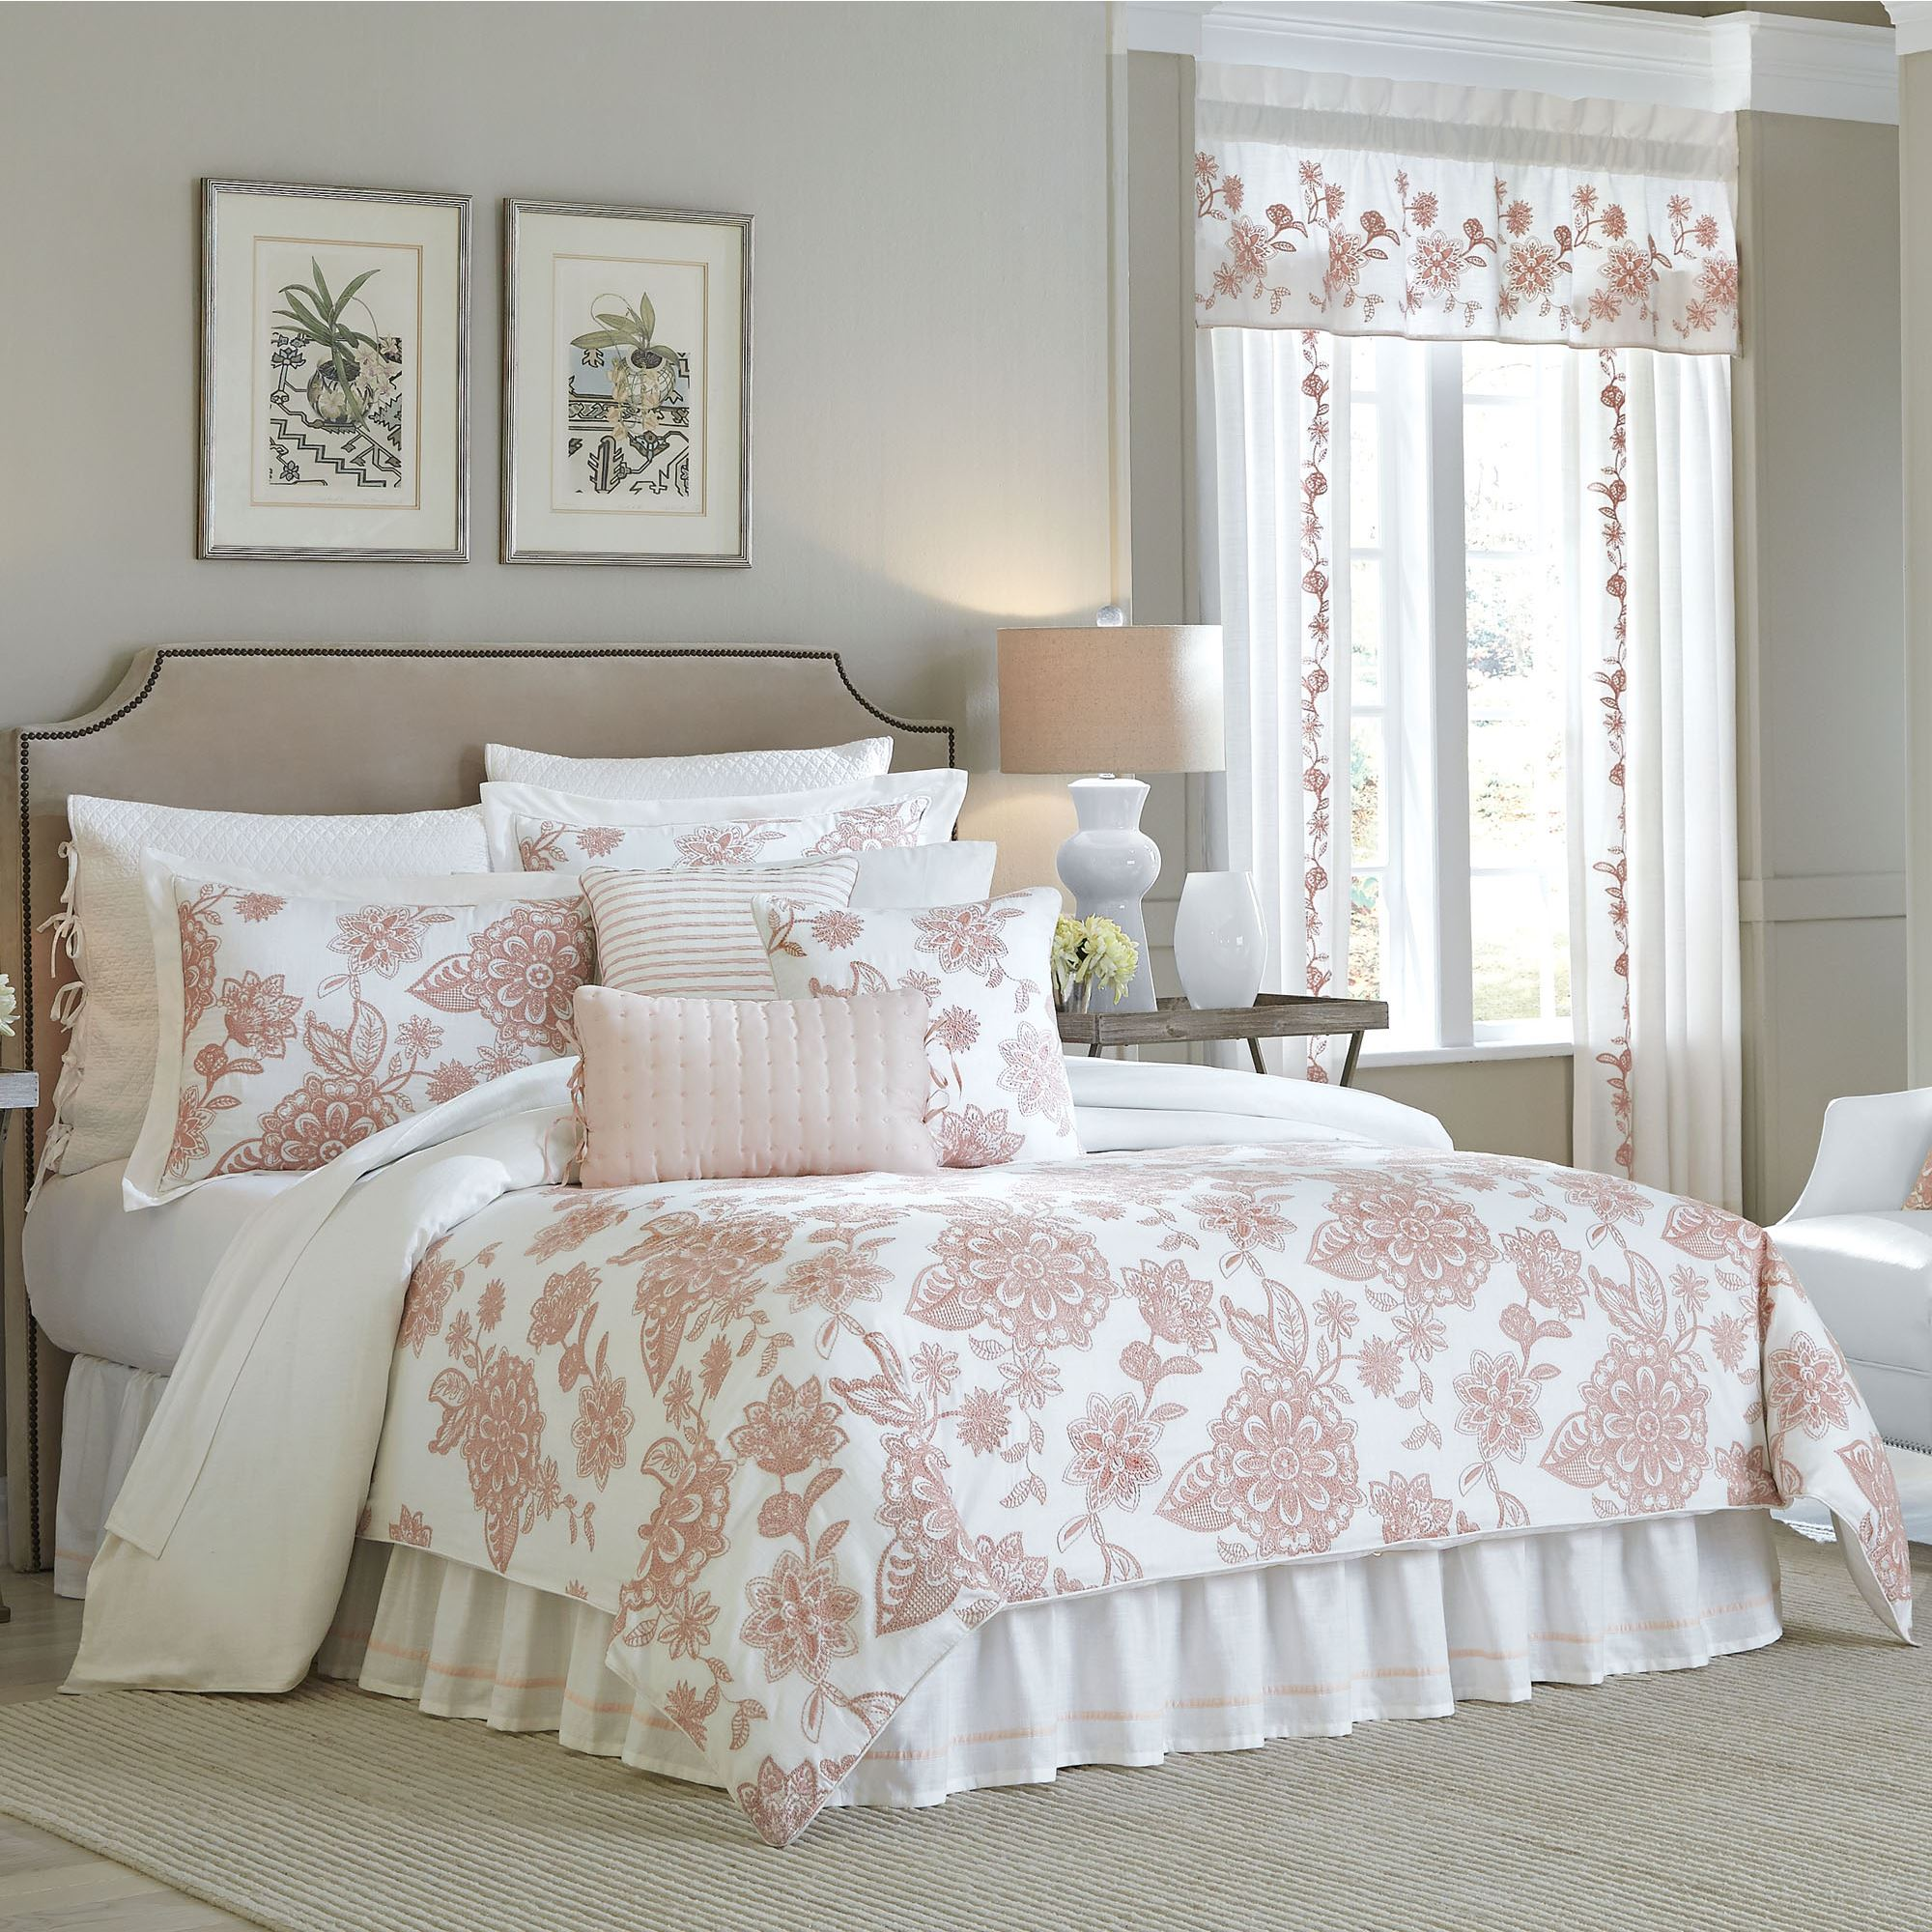 begonia mono monogrammed and dahlia graphics coral or products aqua bedding floral set comforter duvet pink navy